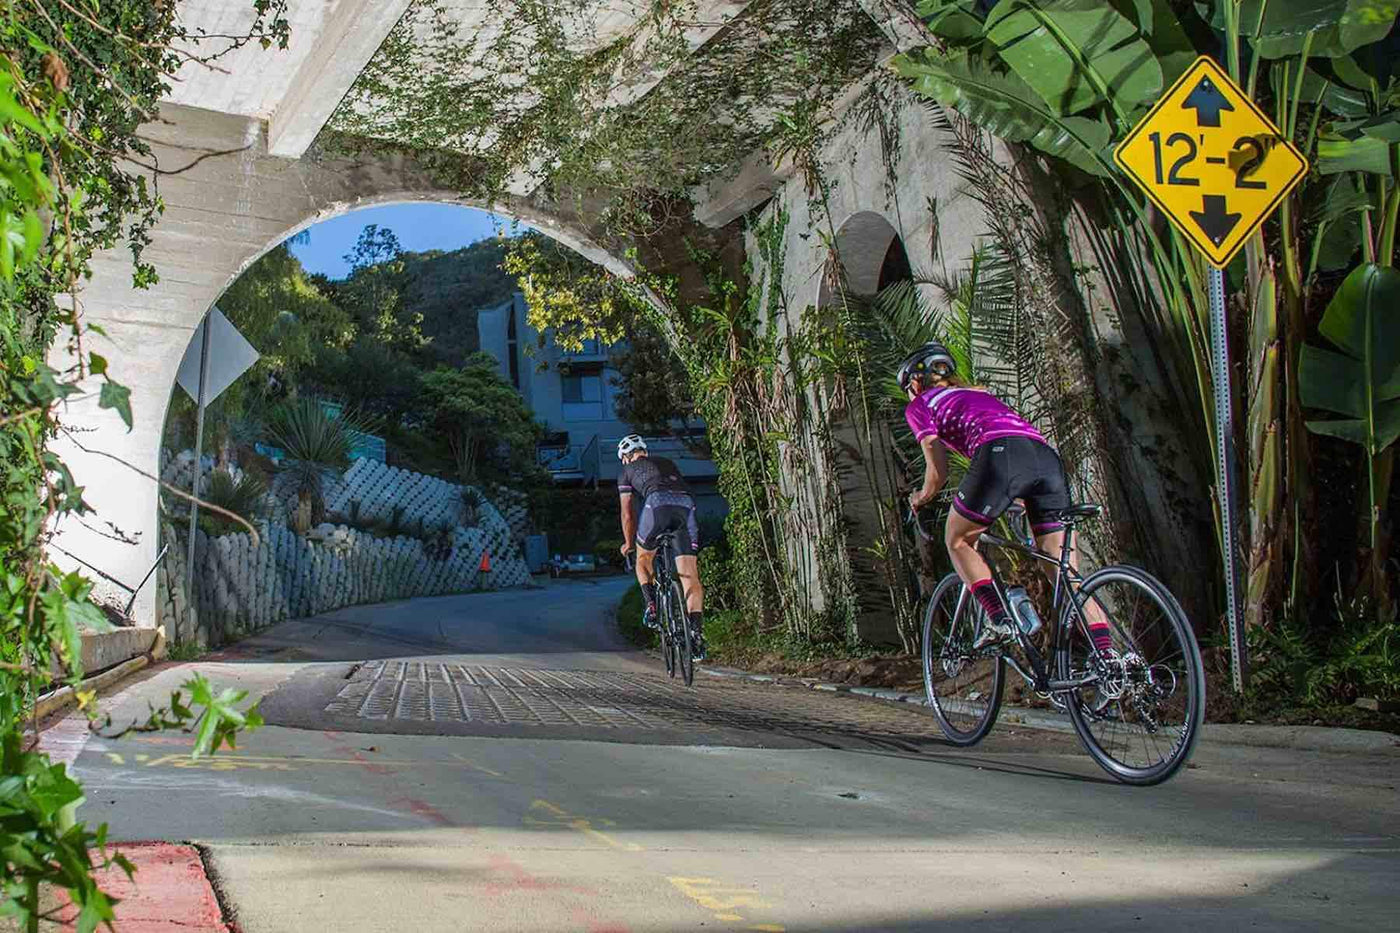 Two road bike riders riding through a bridge under path.